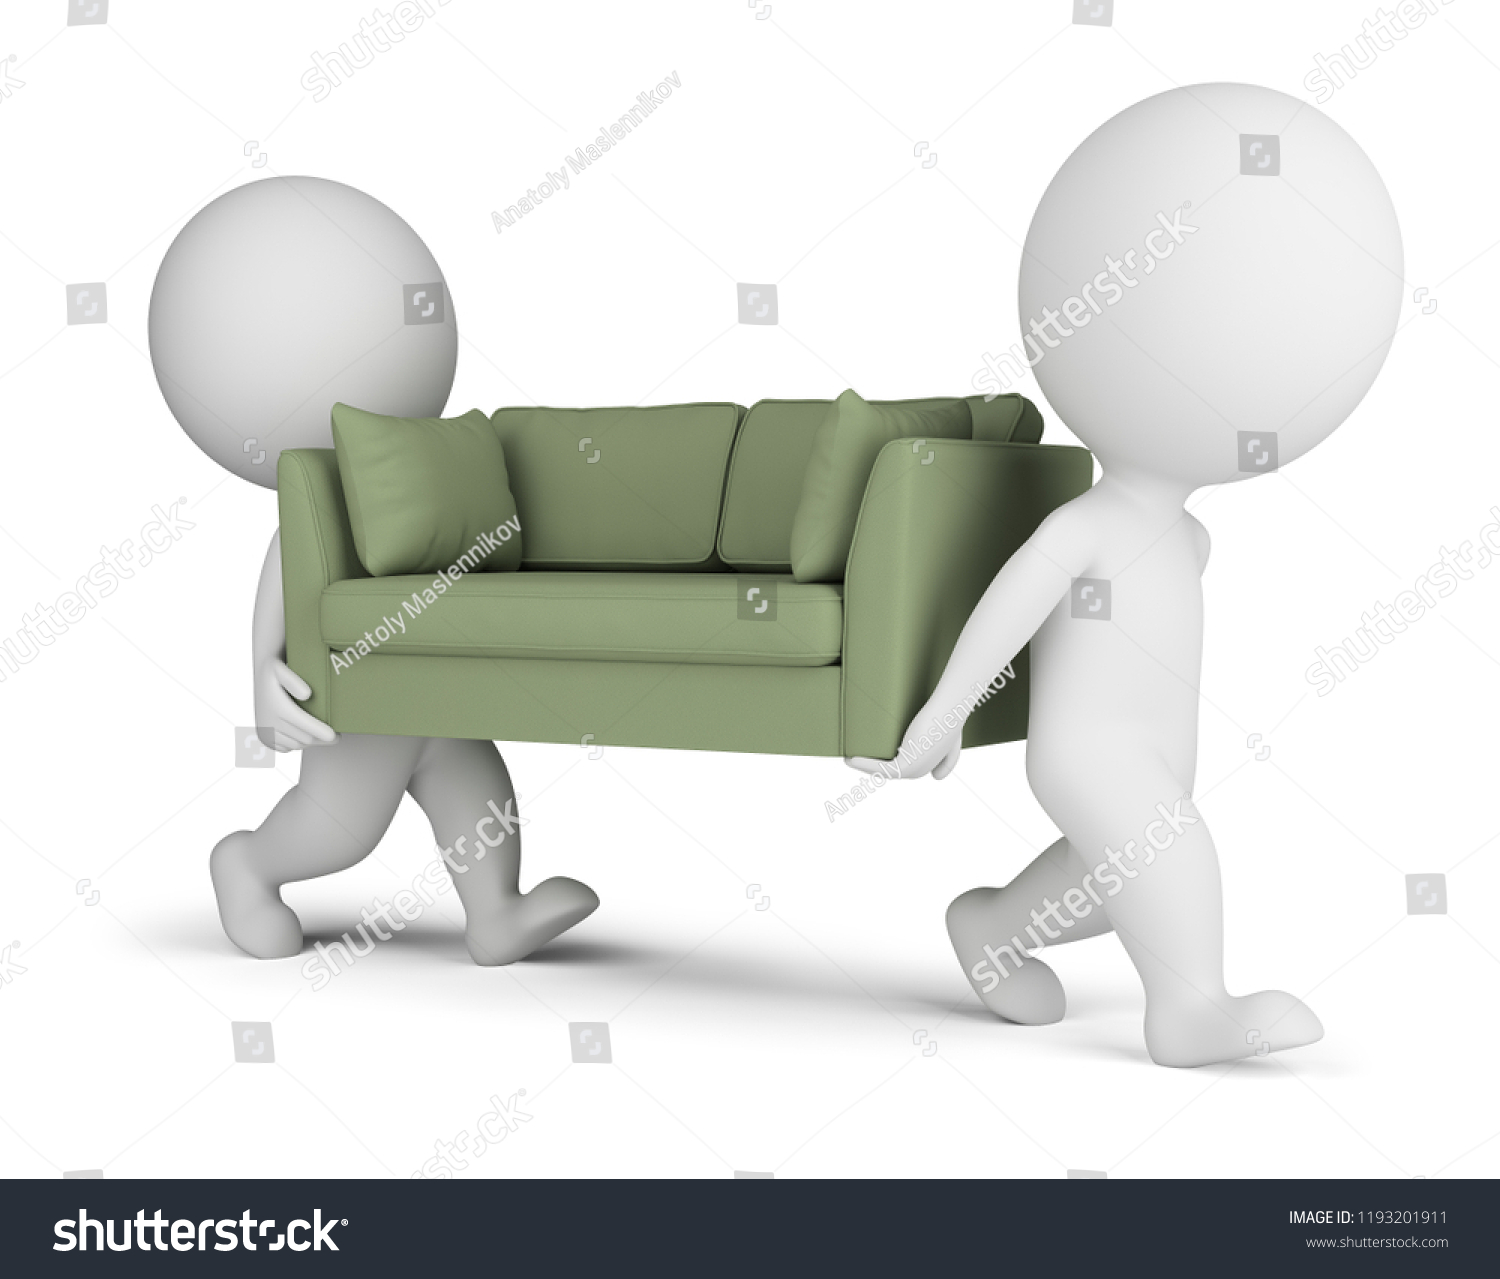 Anatol 3 Seater Retro Sofa 3 D Small People Carry Sofa 3 D Stock Illustration 1193201911